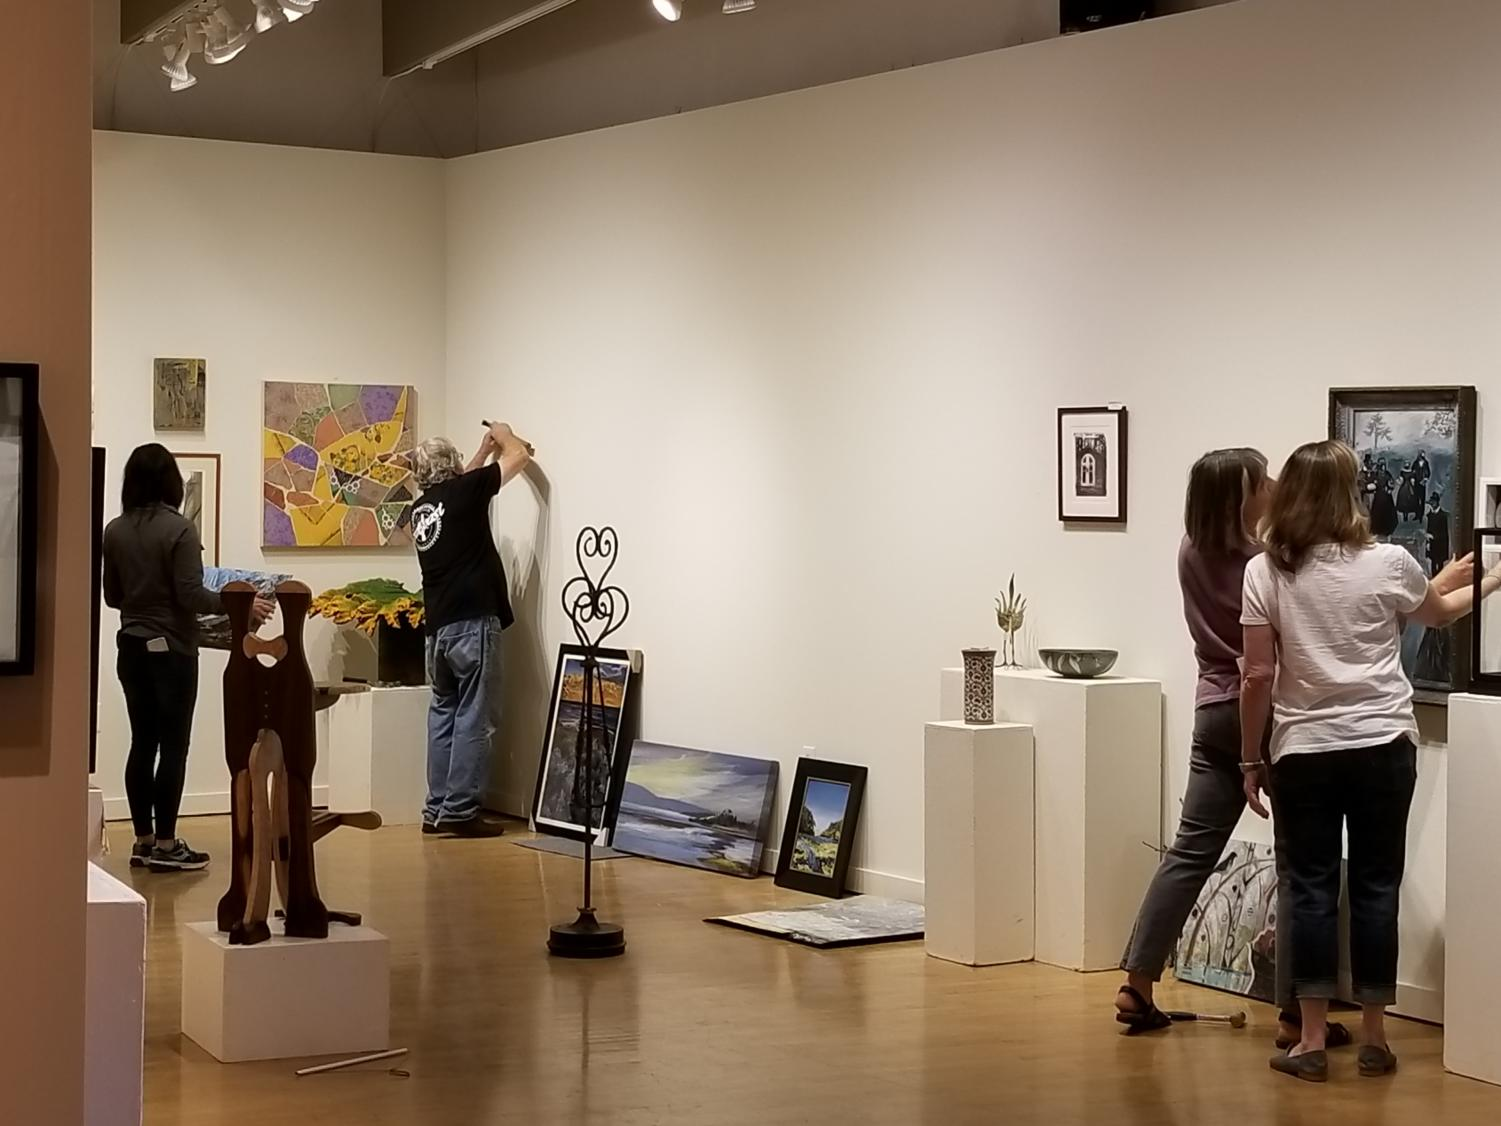 Artists install the Main Preview Exhibit for Art Trails Open Studios at Sebastopol Center for the Arts.